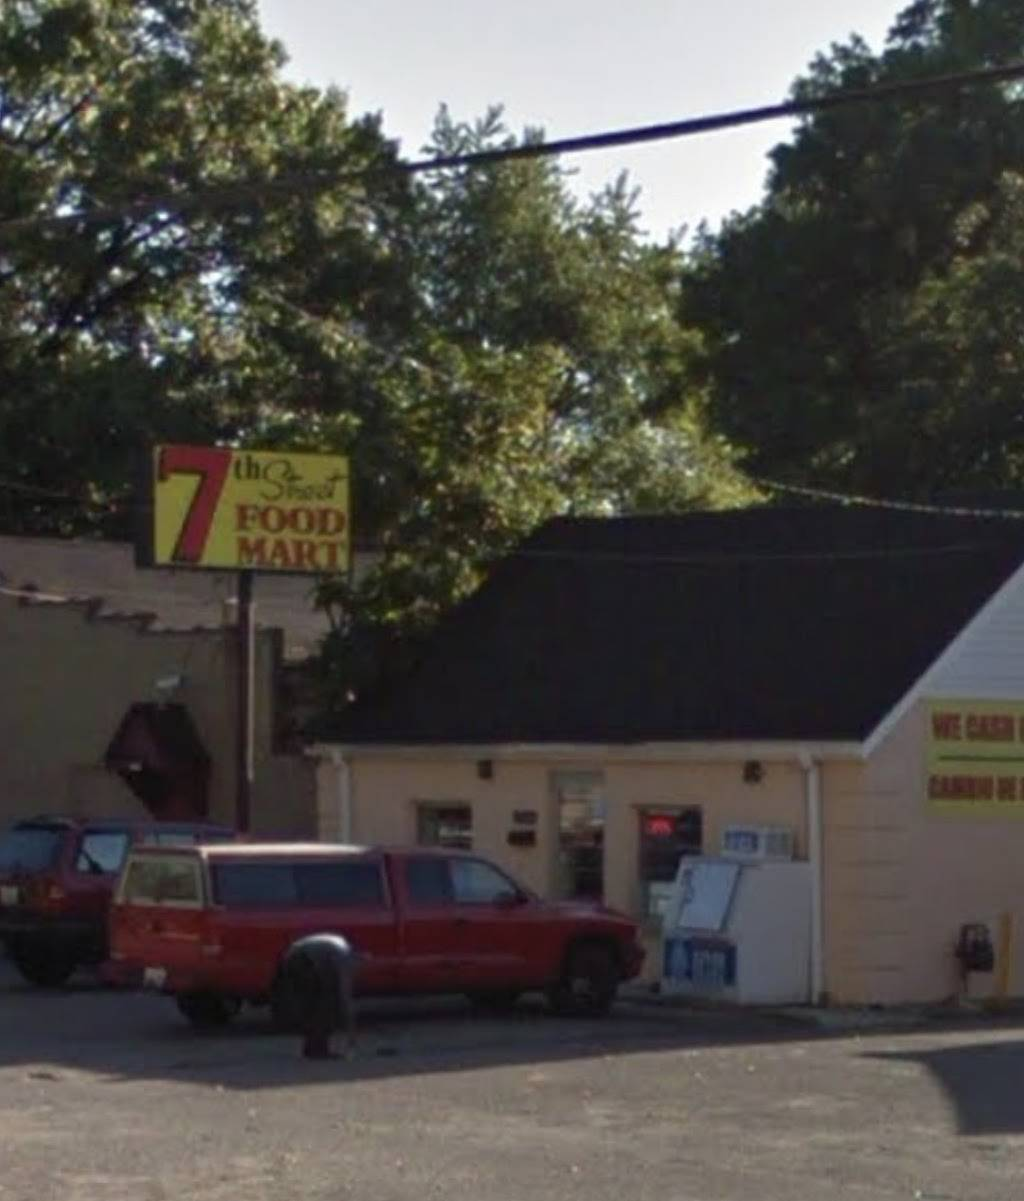 7th Street Food Mart - convenience store    Photo 2 of 2   Address: 2517 7th Street Rd, Louisville, KY 40208, USA   Phone: (502) 636-0073